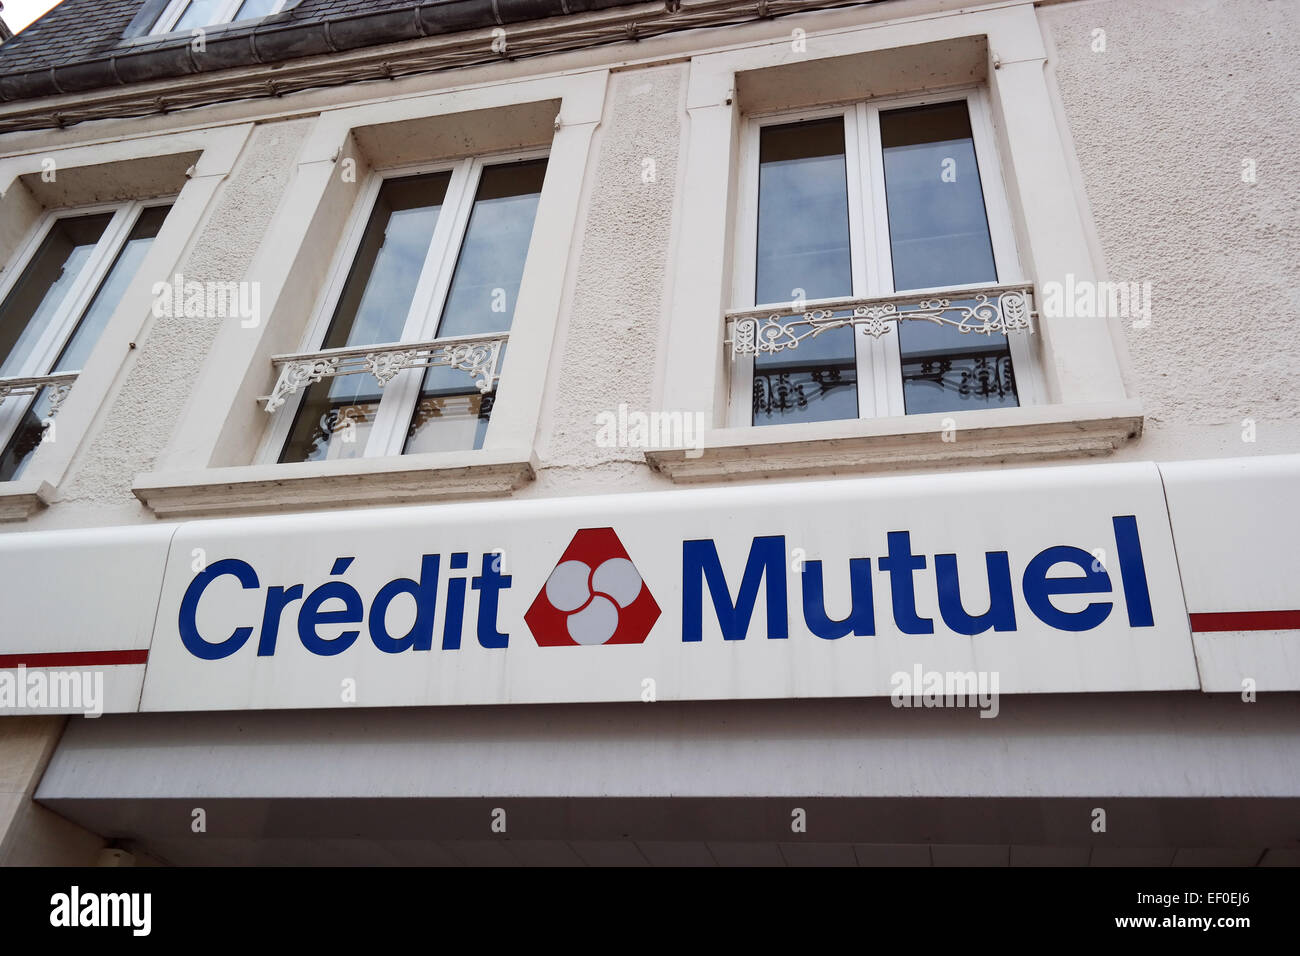 CARENTAN, FRANCE - JULY 2014: Branch of Credit Mutuel in Normandy. Credit Mutuel is a major French bank - Stock Image